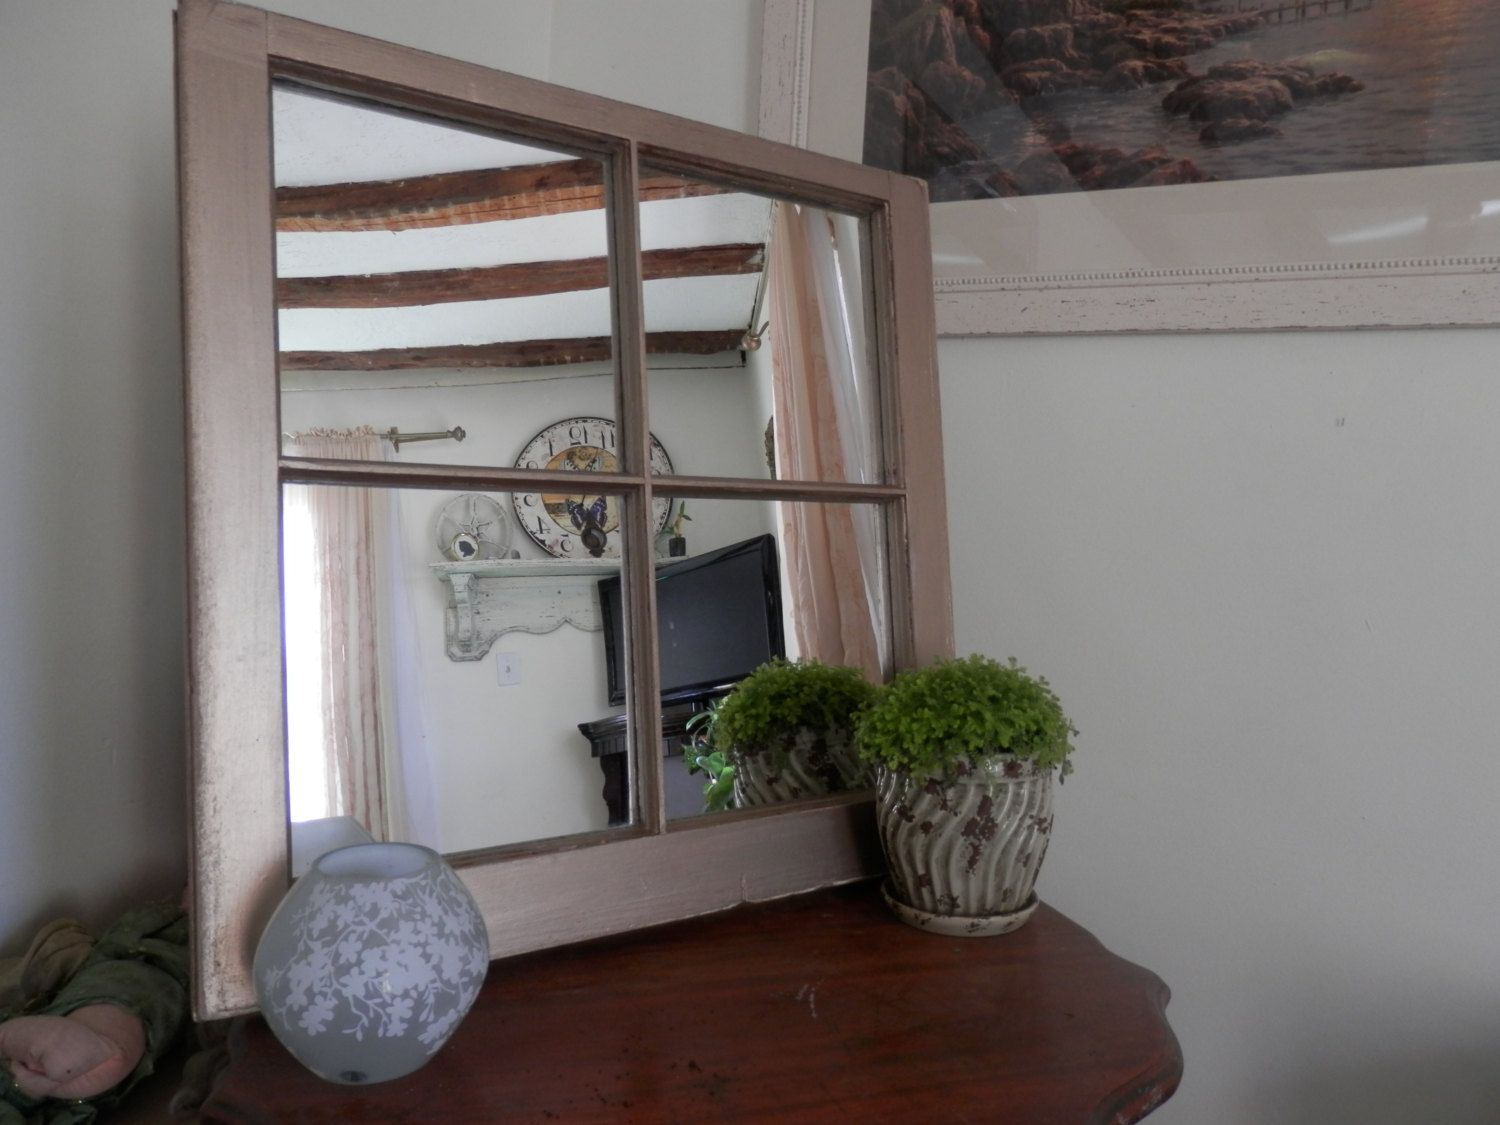 Old 4 Pane Window Mirror 24x24painted Vintage Gold Window Mirror Window Pane Mirror Arched Windows